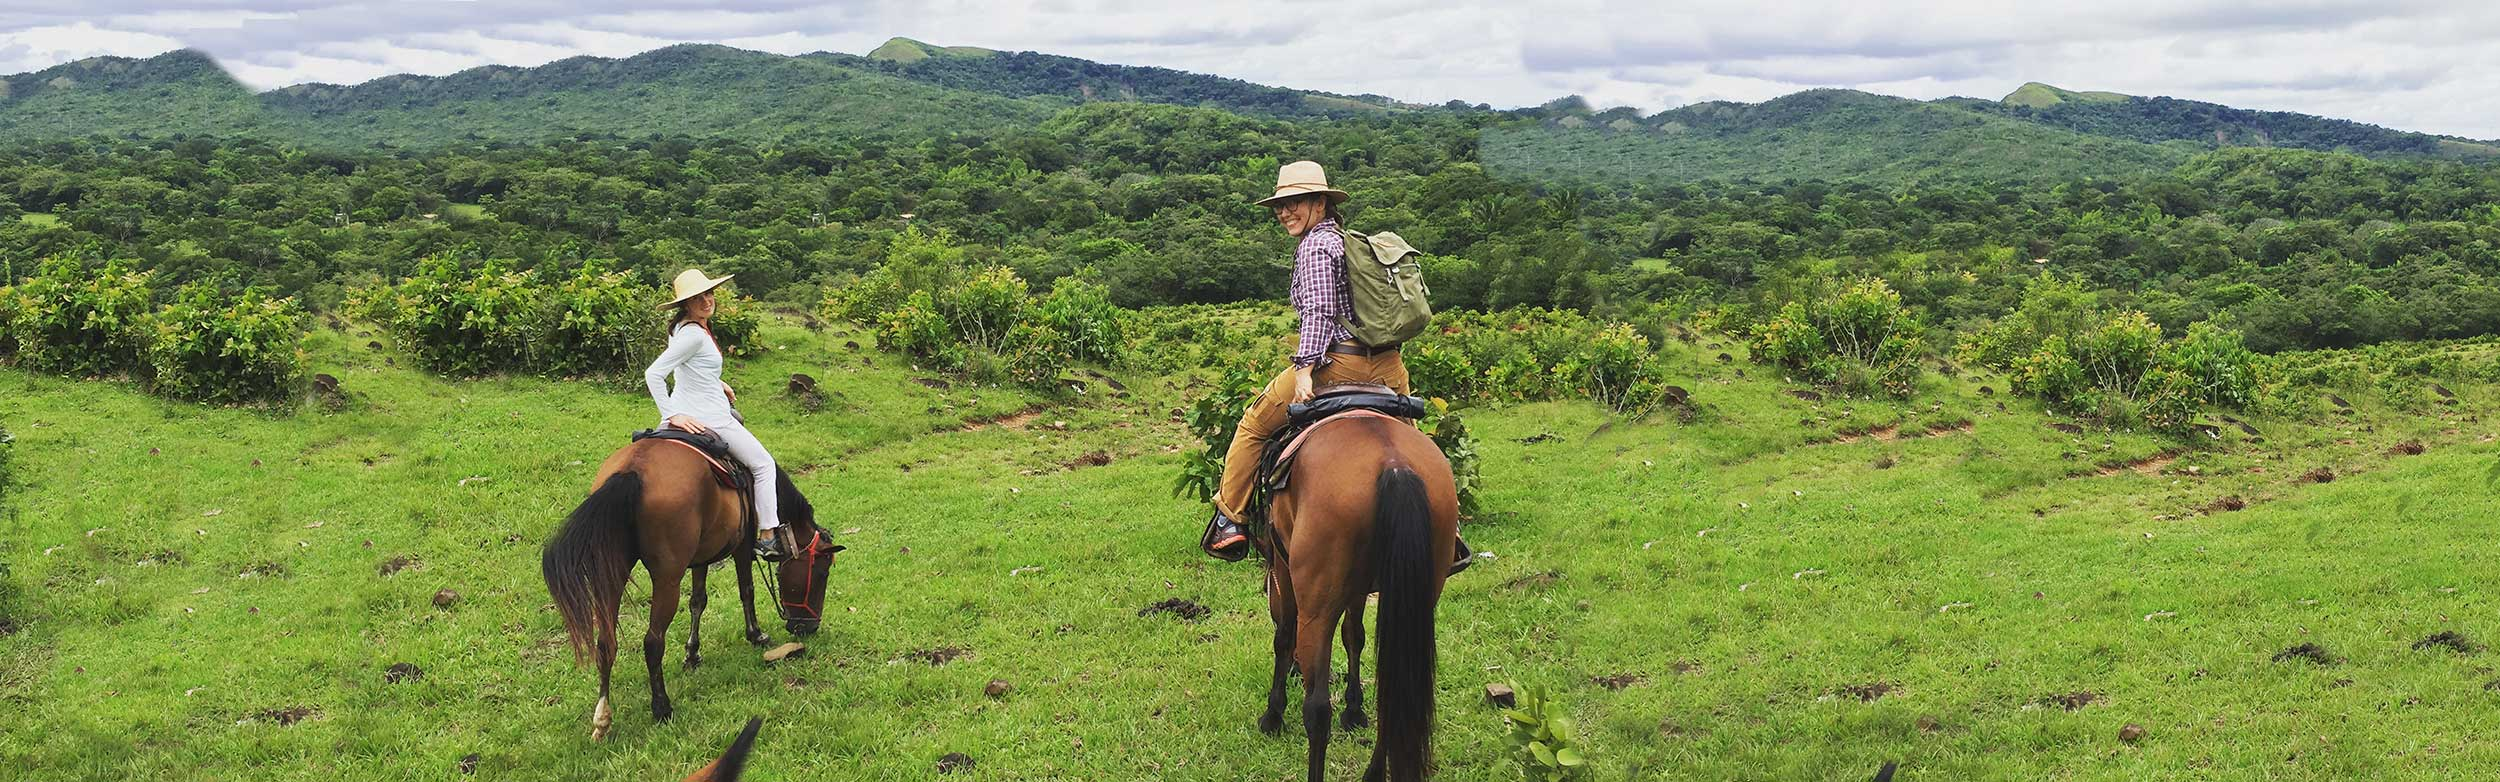 Horseback Riding in the mountains of Chiriqui